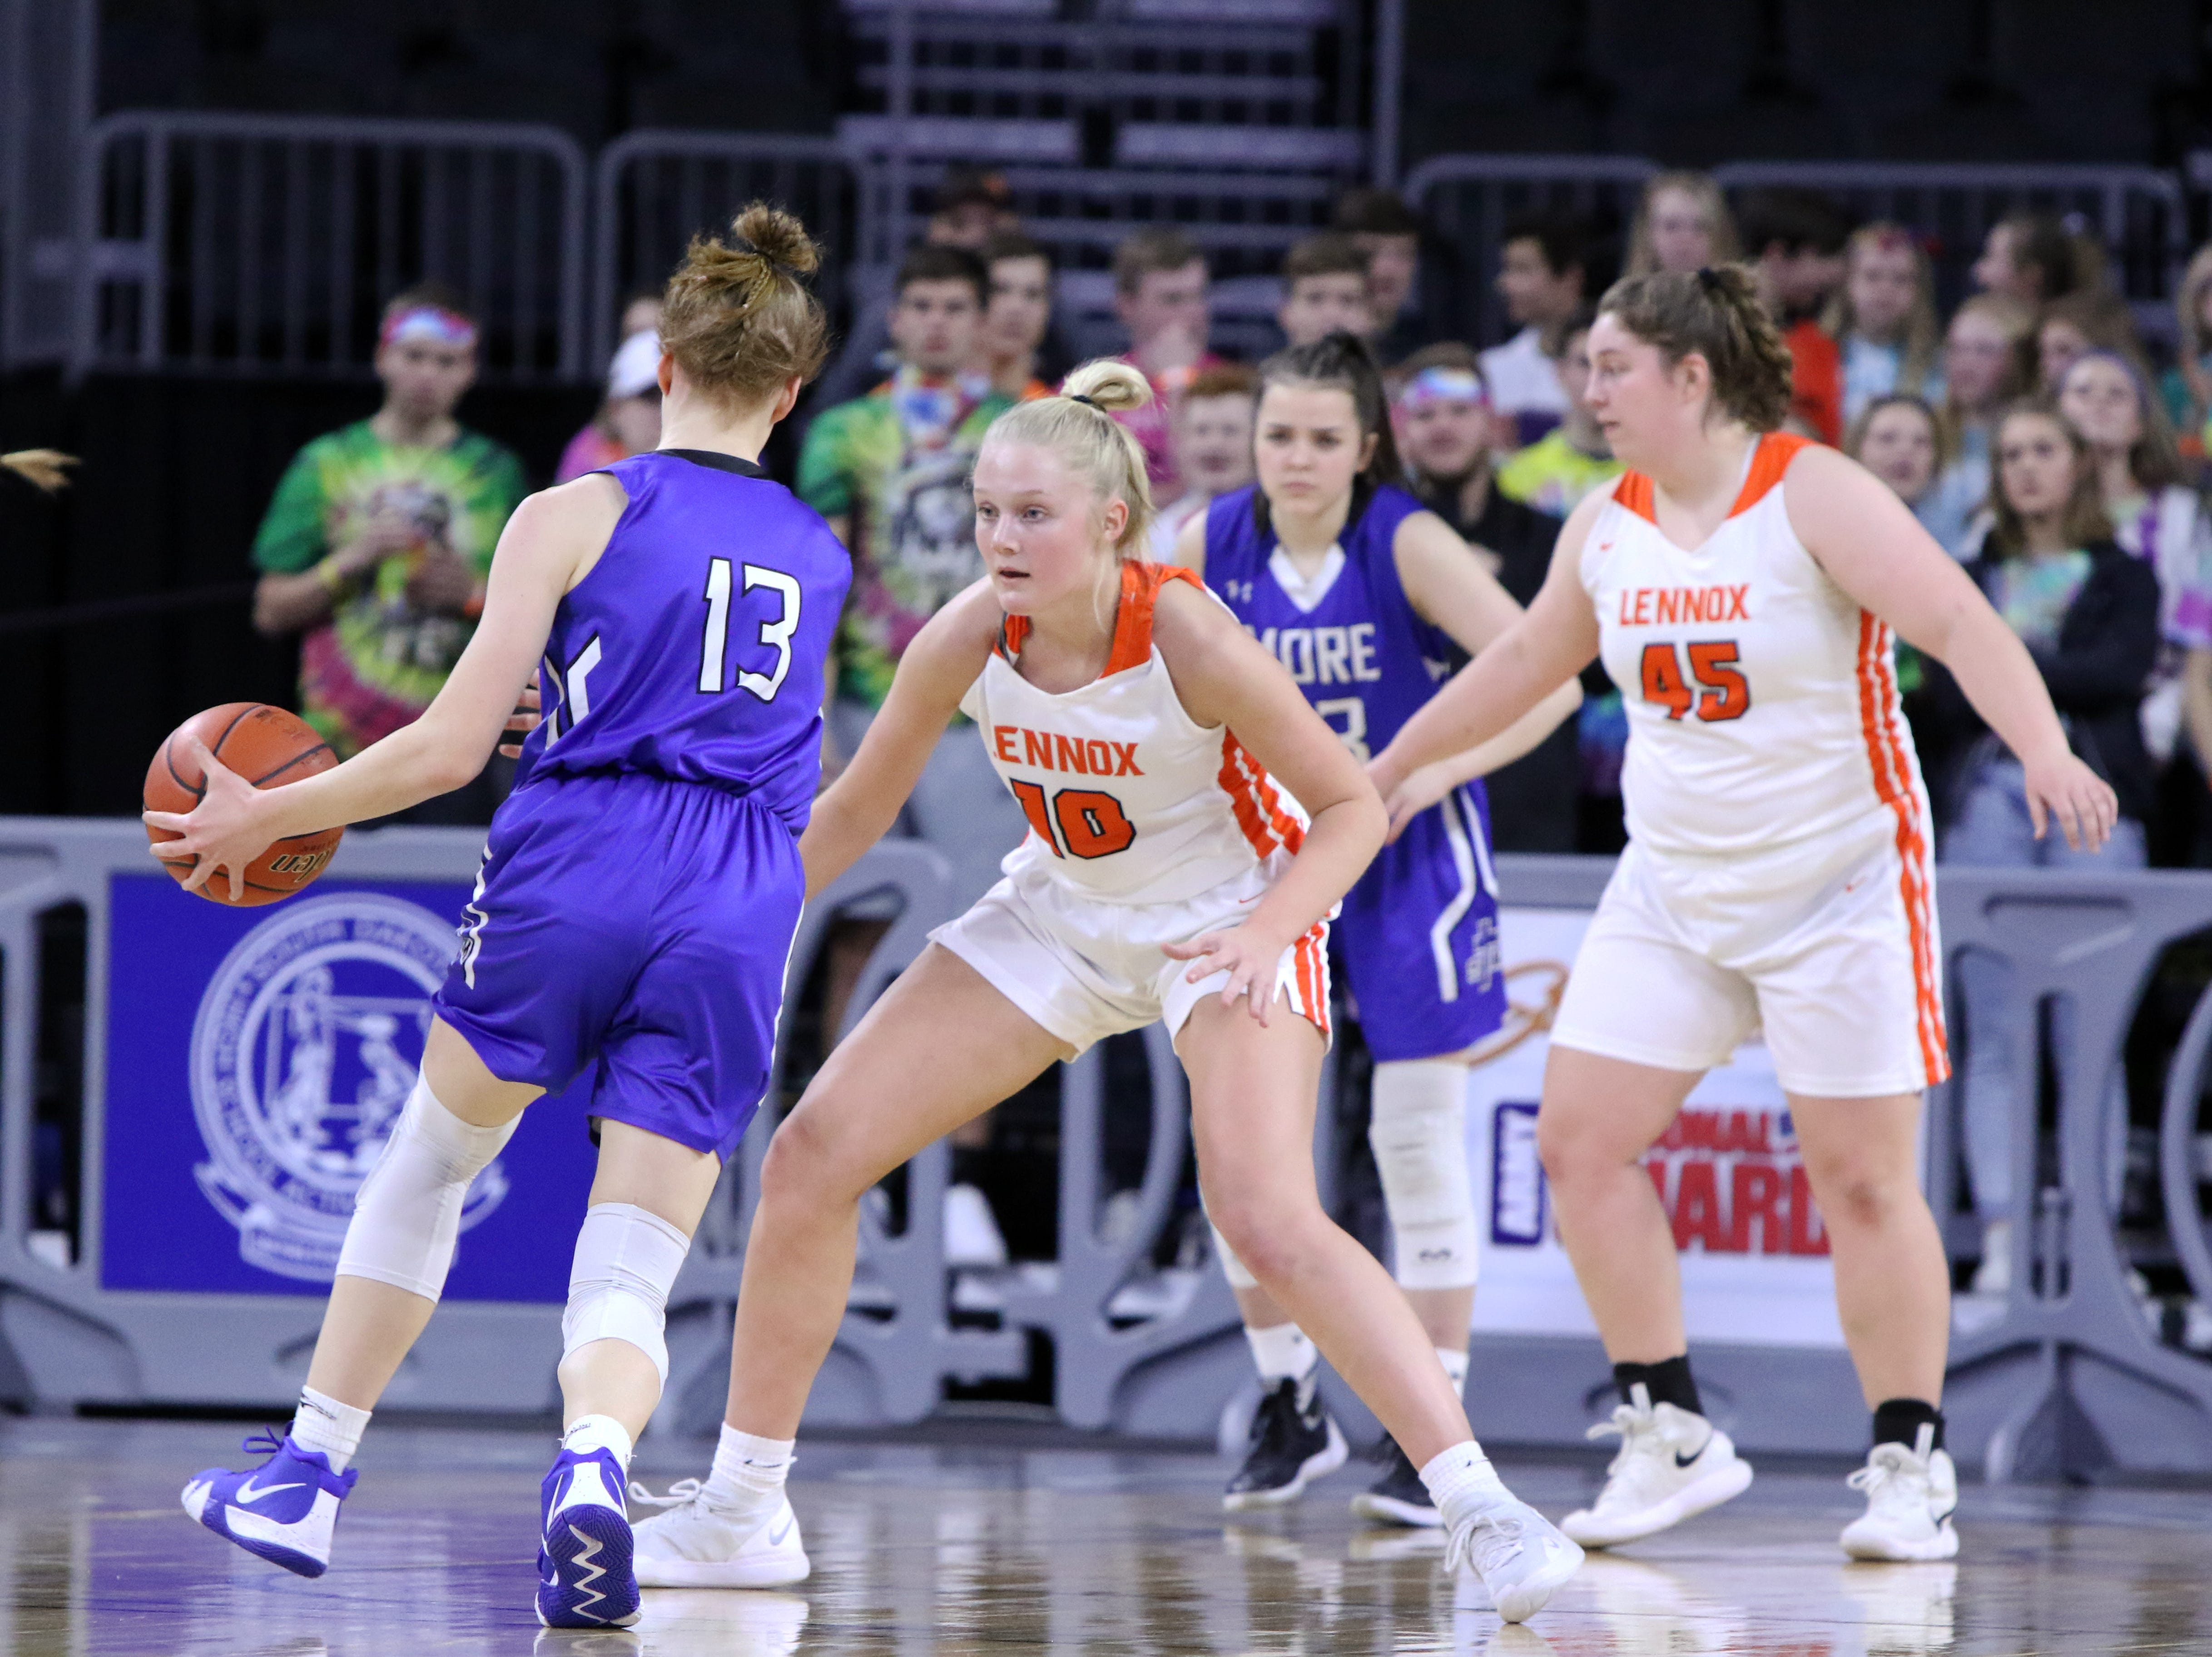 Madysen Vlastuin of Lennox pressures Haliegh Timmer of St Thomas More defends Thursday night's game at the Premier Center in Sioux Falls.